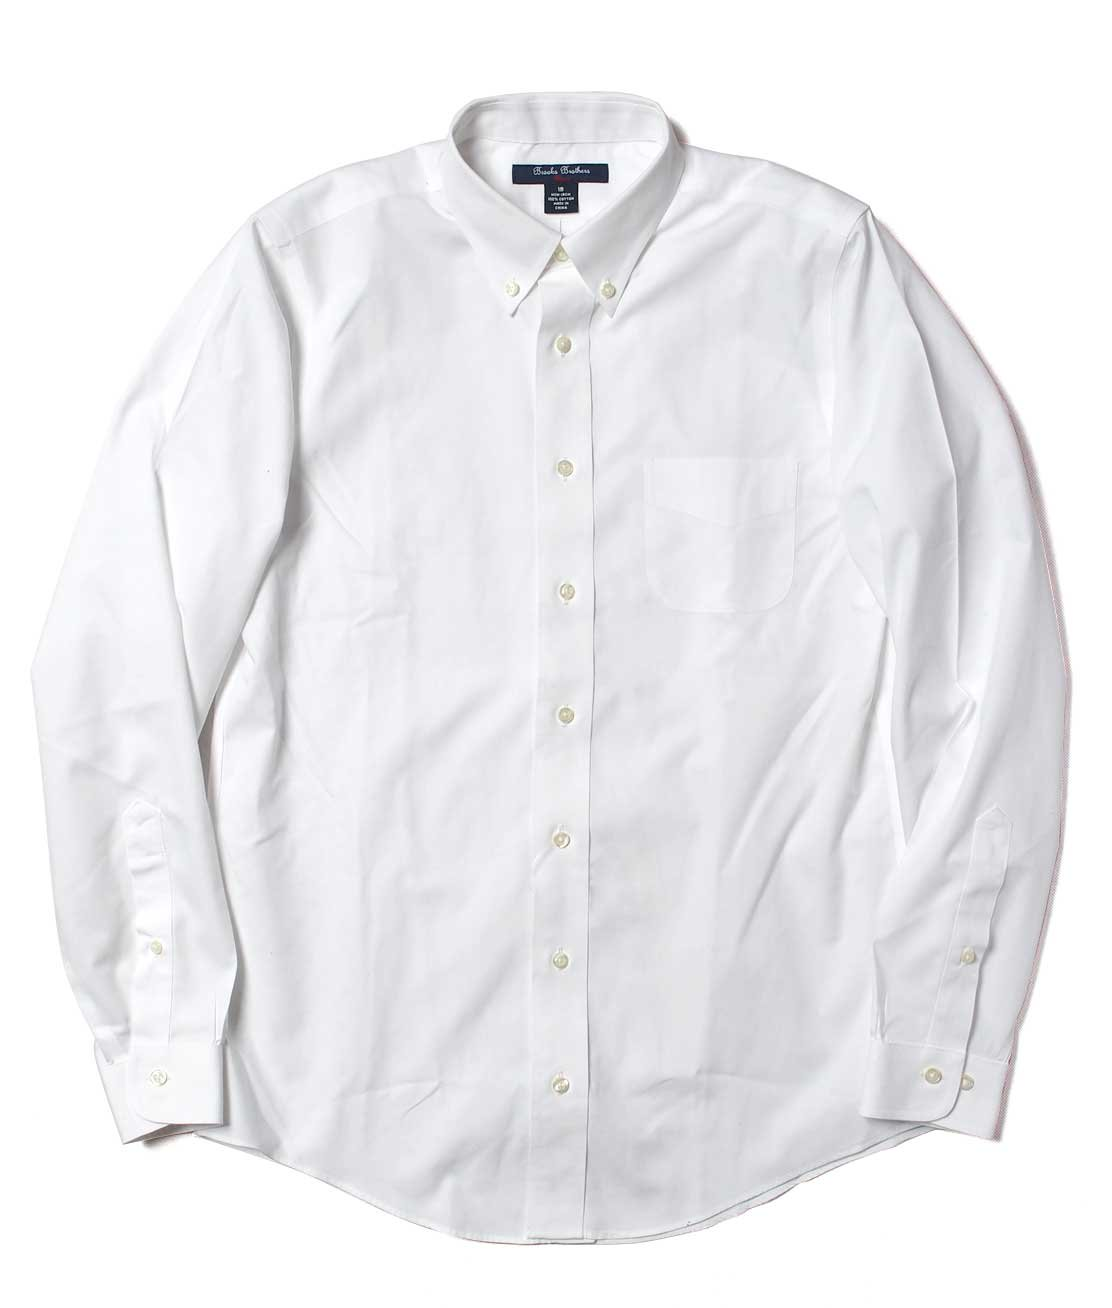 Brooks brothers boy 39 s oxford b d shirt white for Brooks brothers boys shirts